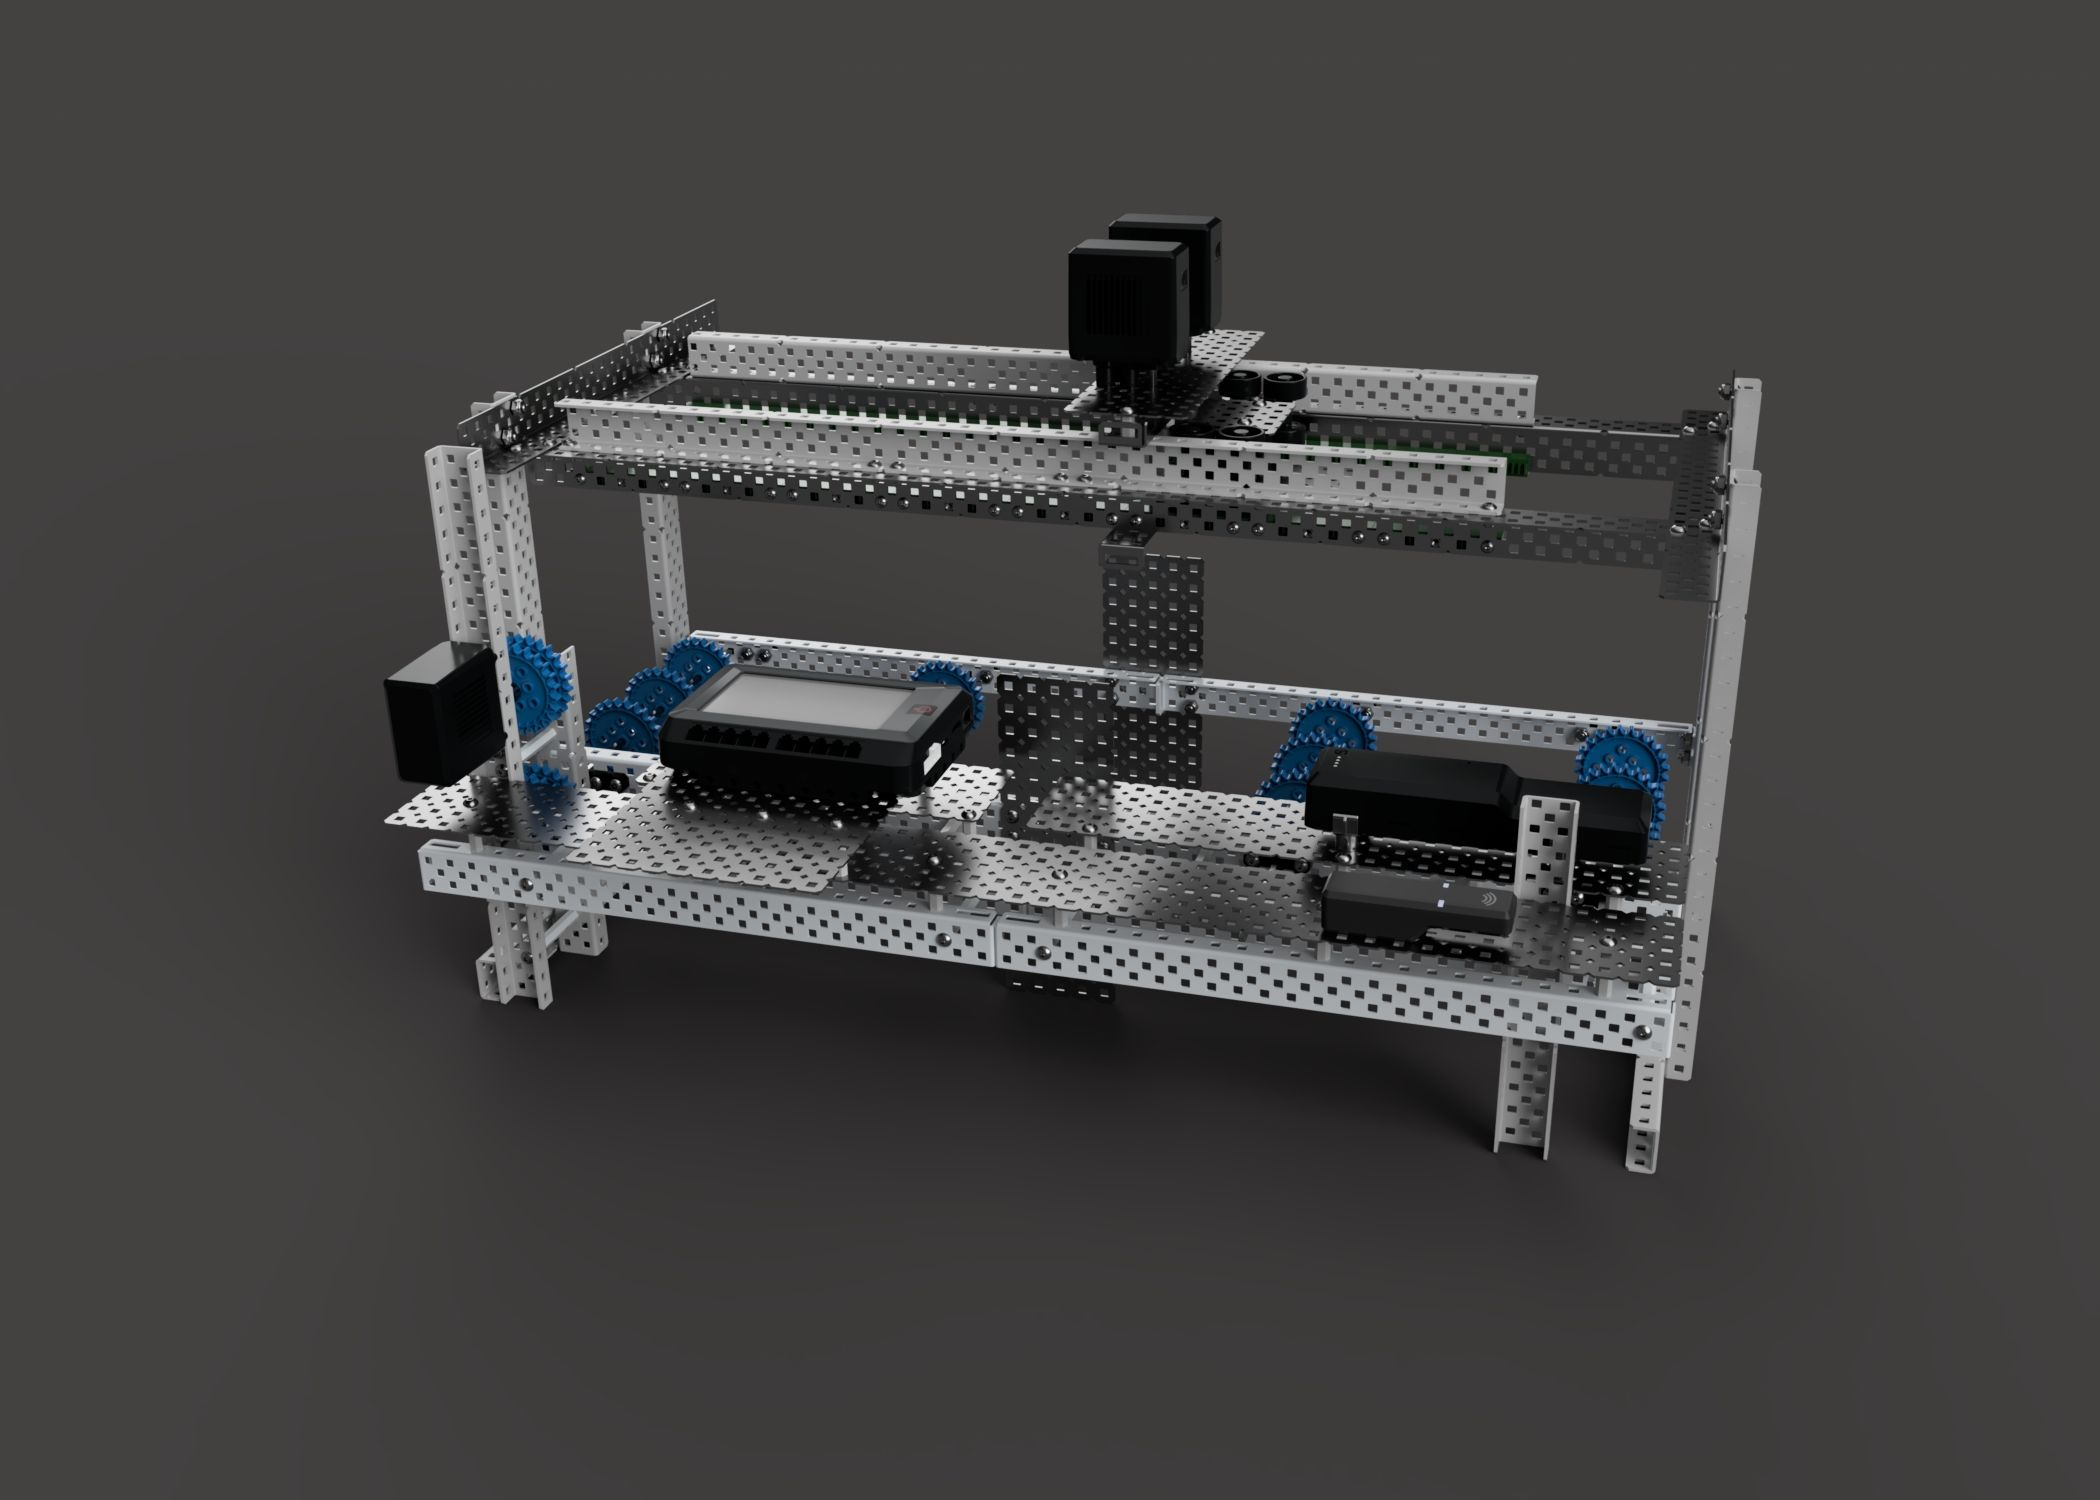 Automatic-machine---based-on-image-processing---v5-vex-robotics---under-development-3500-3500